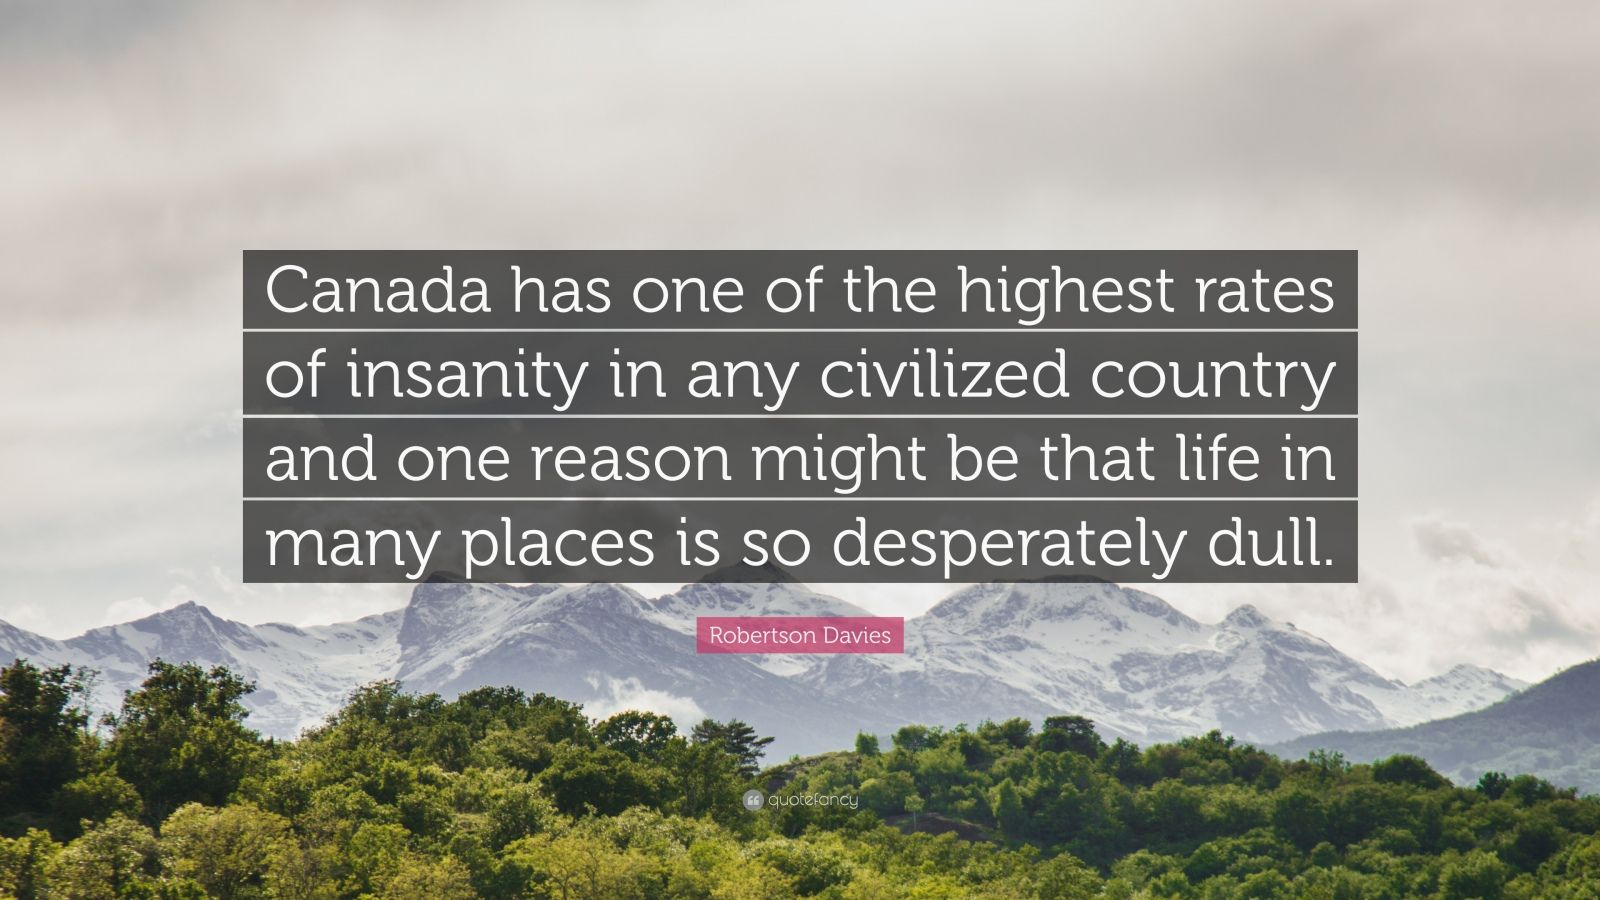 """Robertson Davies Quote: """"Canada has one of the highest rates of insanity in any civilized country and one reason might be that life in many places is so desperately dull."""""""